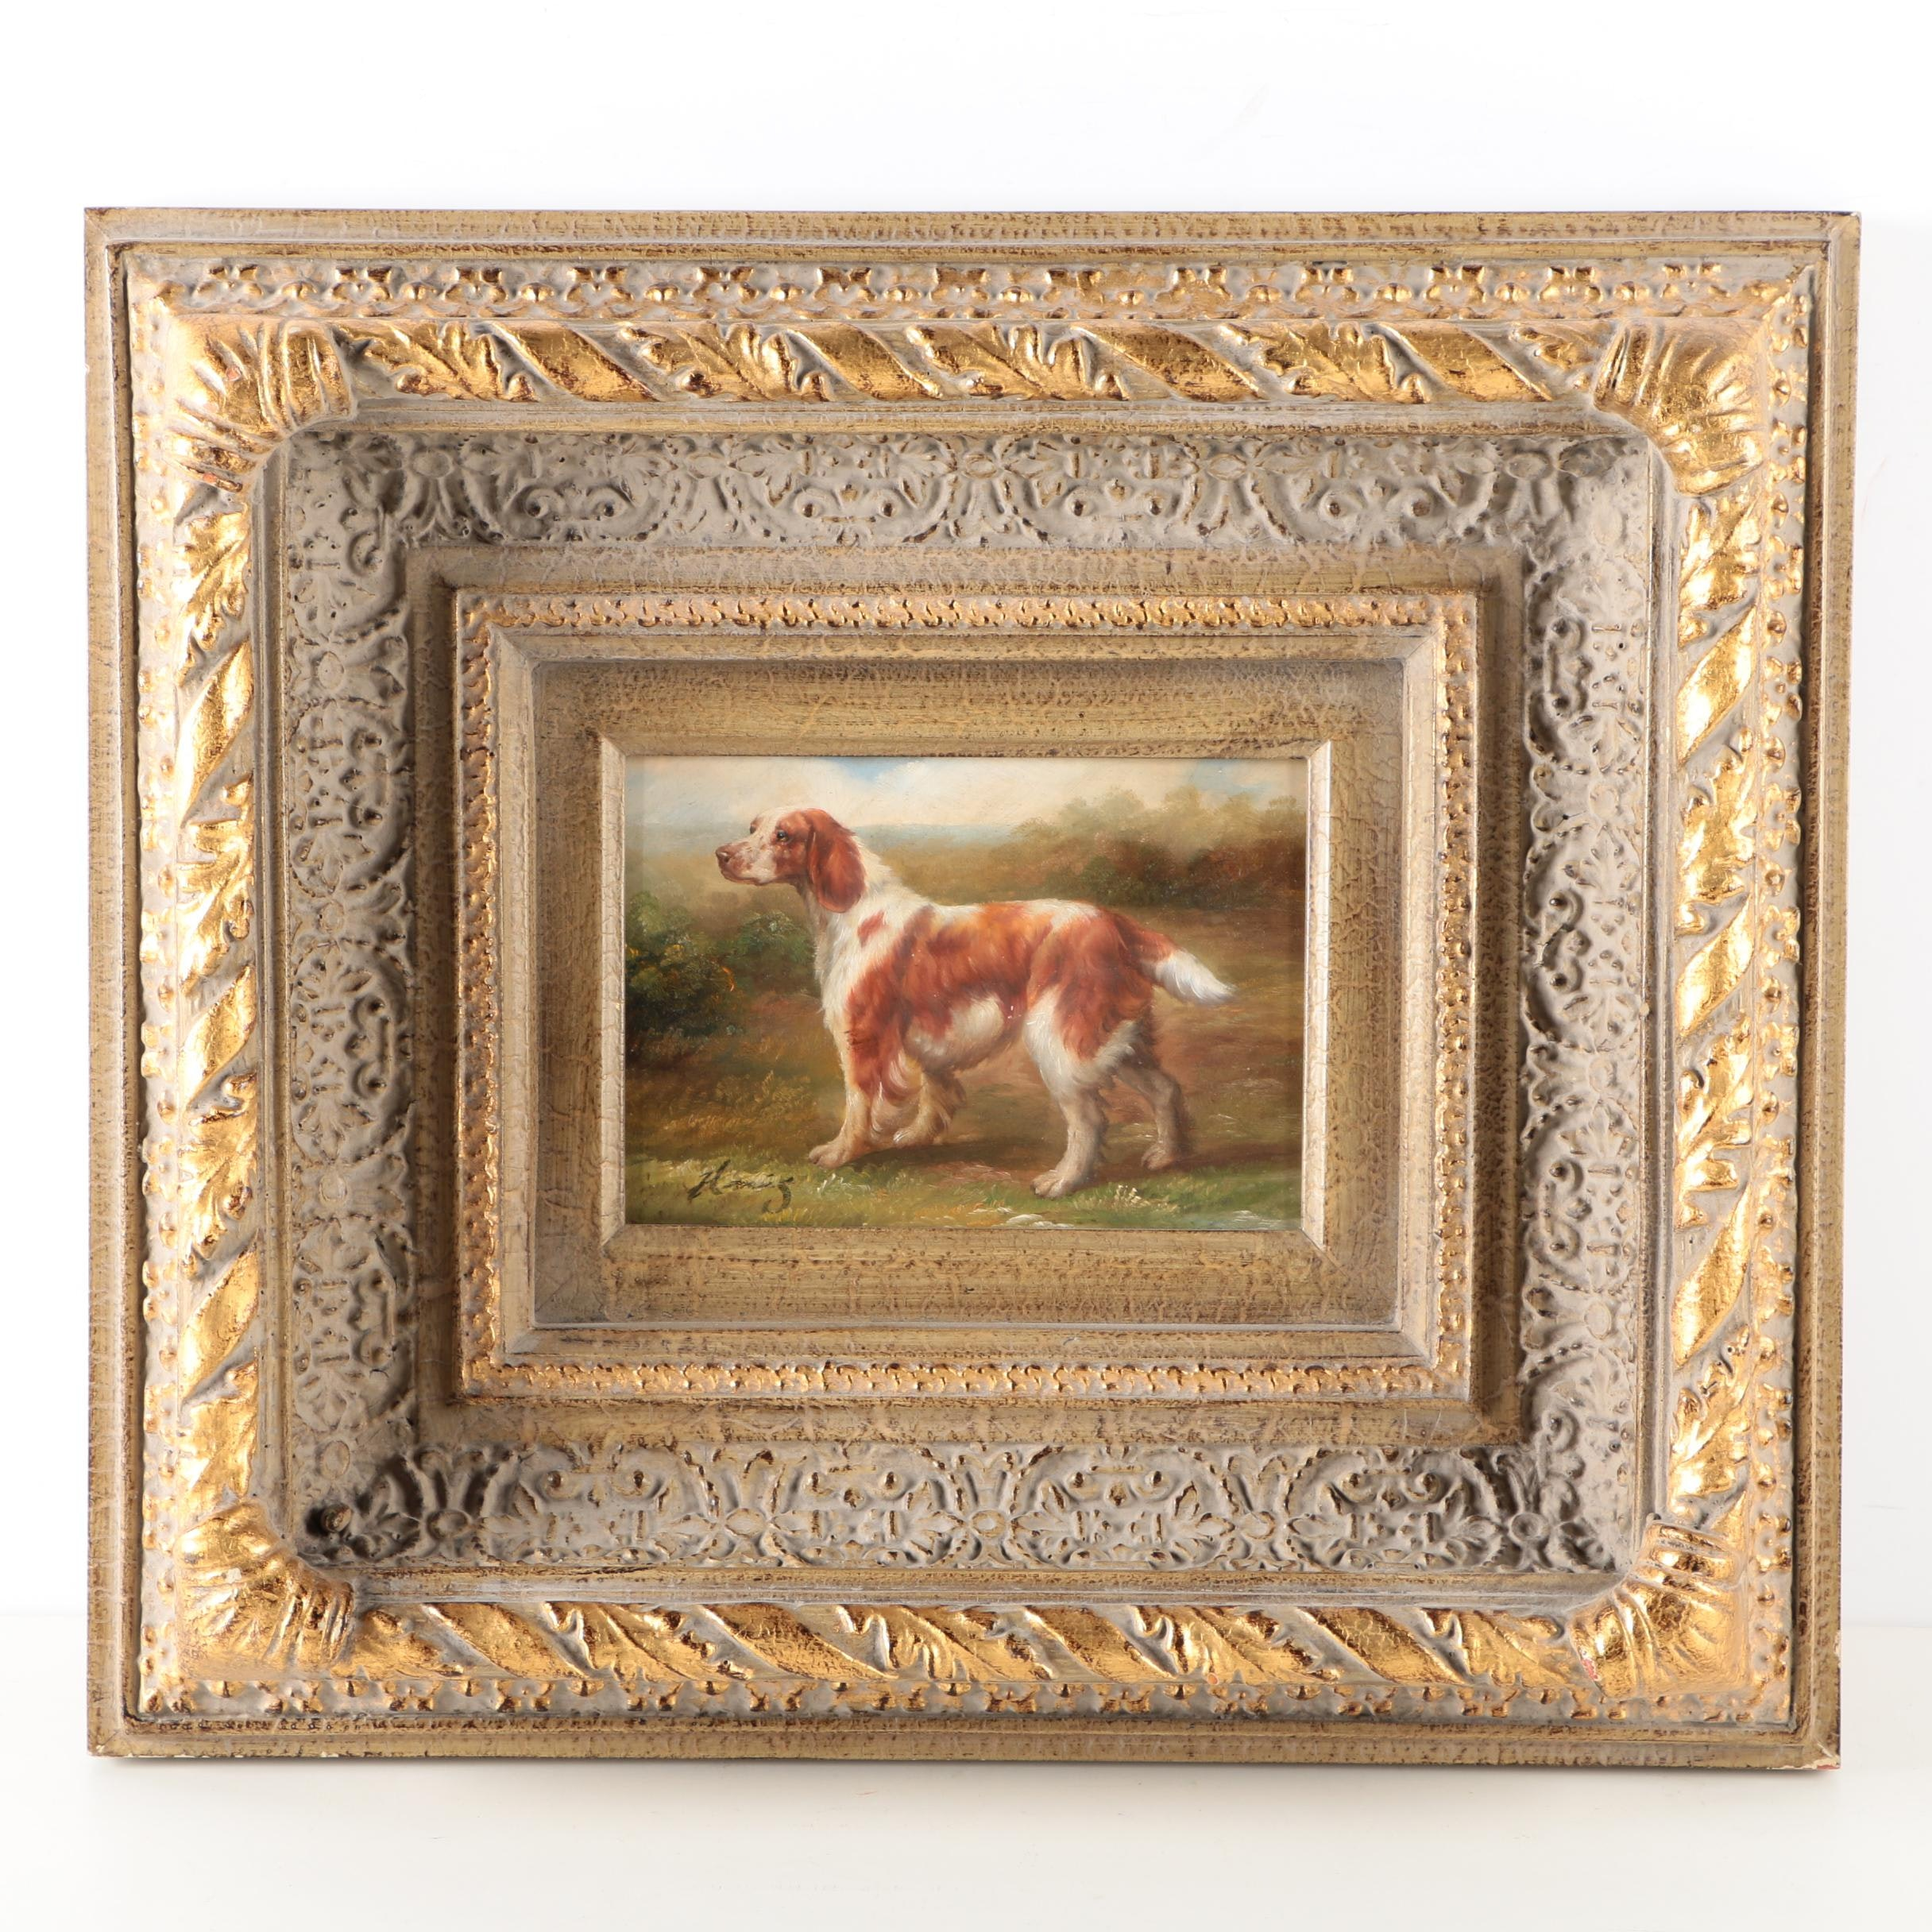 Oil Painting on Panel of an Irish Red and White Setter